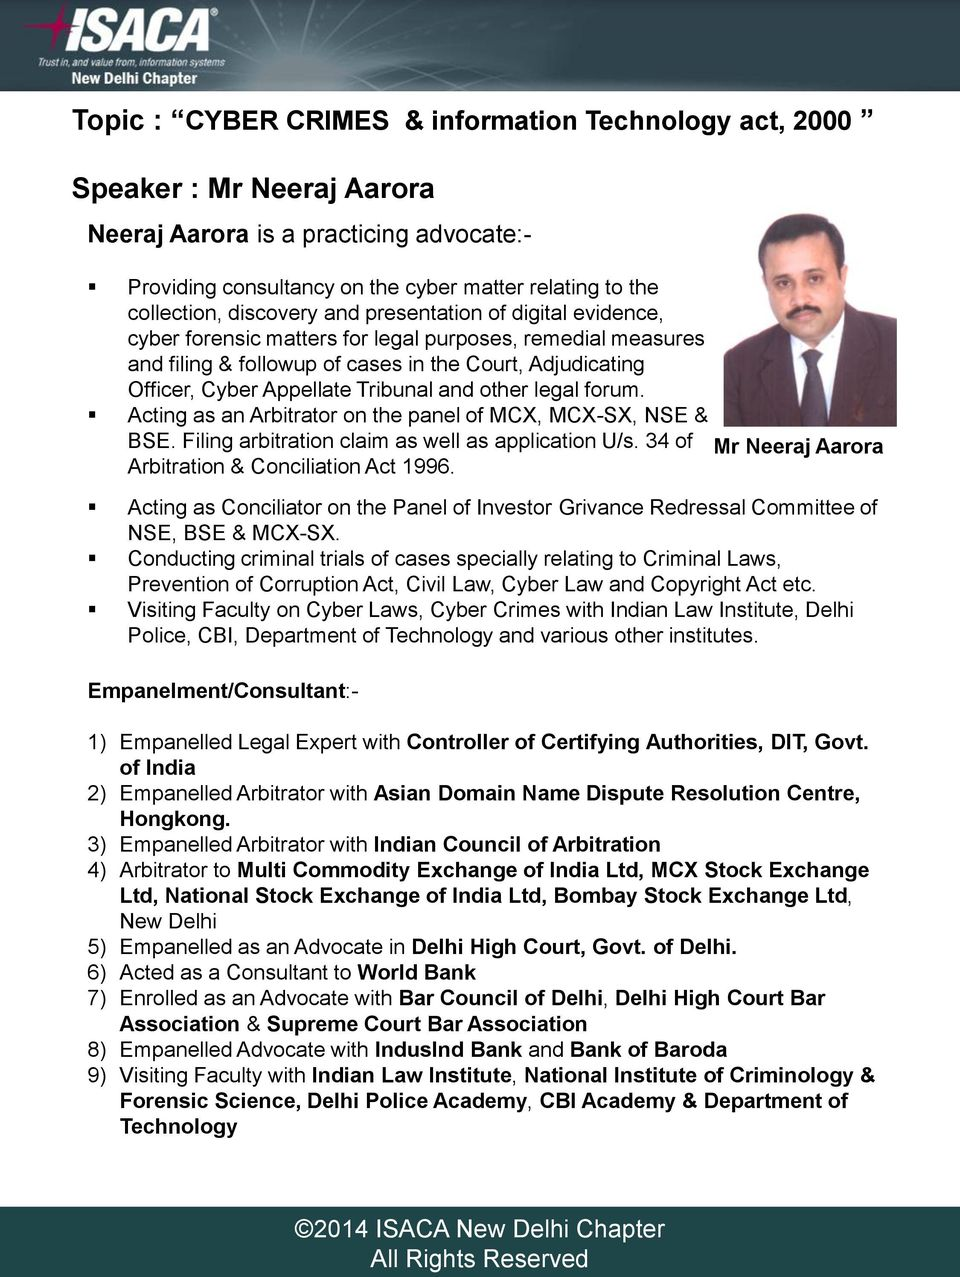 Tribunal and other legal forum. Acting as an Arbitrator on the panel of MCX, MCX-SX, NSE & BSE. Filing arbitration claim as well as application U/s.